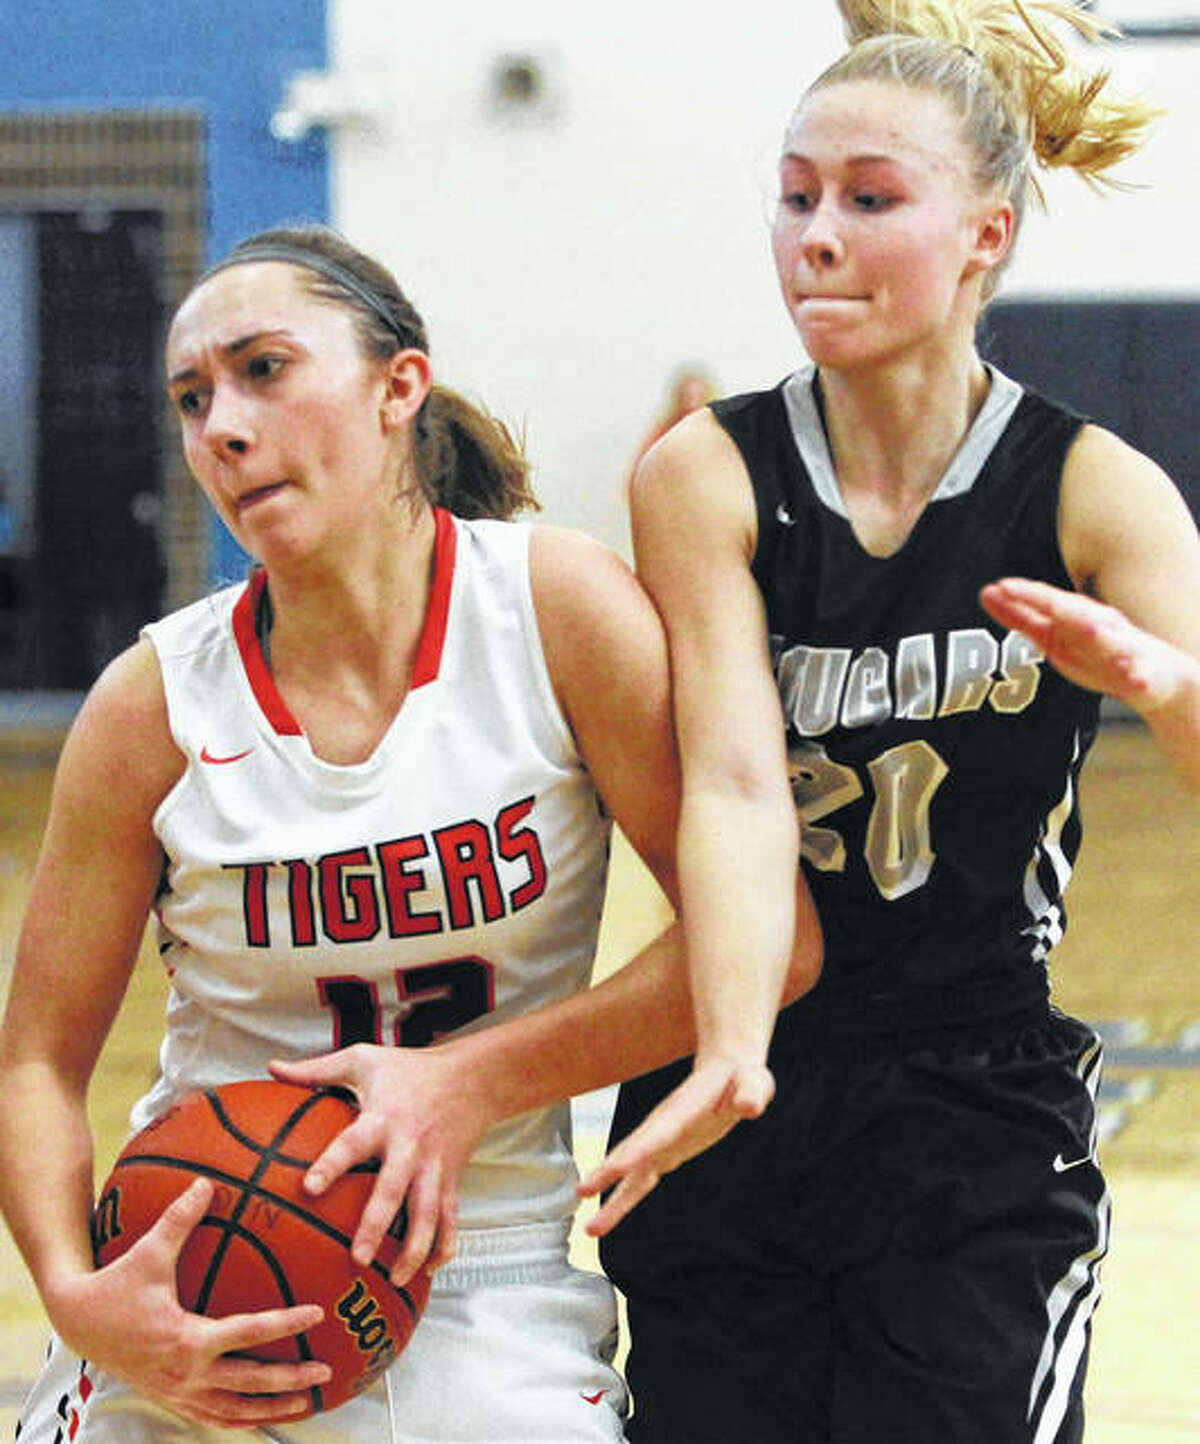 Greenfield's senior Kassidy Walters (left) secures a rebound as Winchester West Central's Maddie Lashmett tries to knock the ball away during the third-place game of the North Greene Tournament on Jan. 13 in White Hall. Back in tourney action Wednesday night at Carrollton, Walters scored 23 points in a Tigers' win to become Greenfield's all-time leading scorer with 1,590 career points.